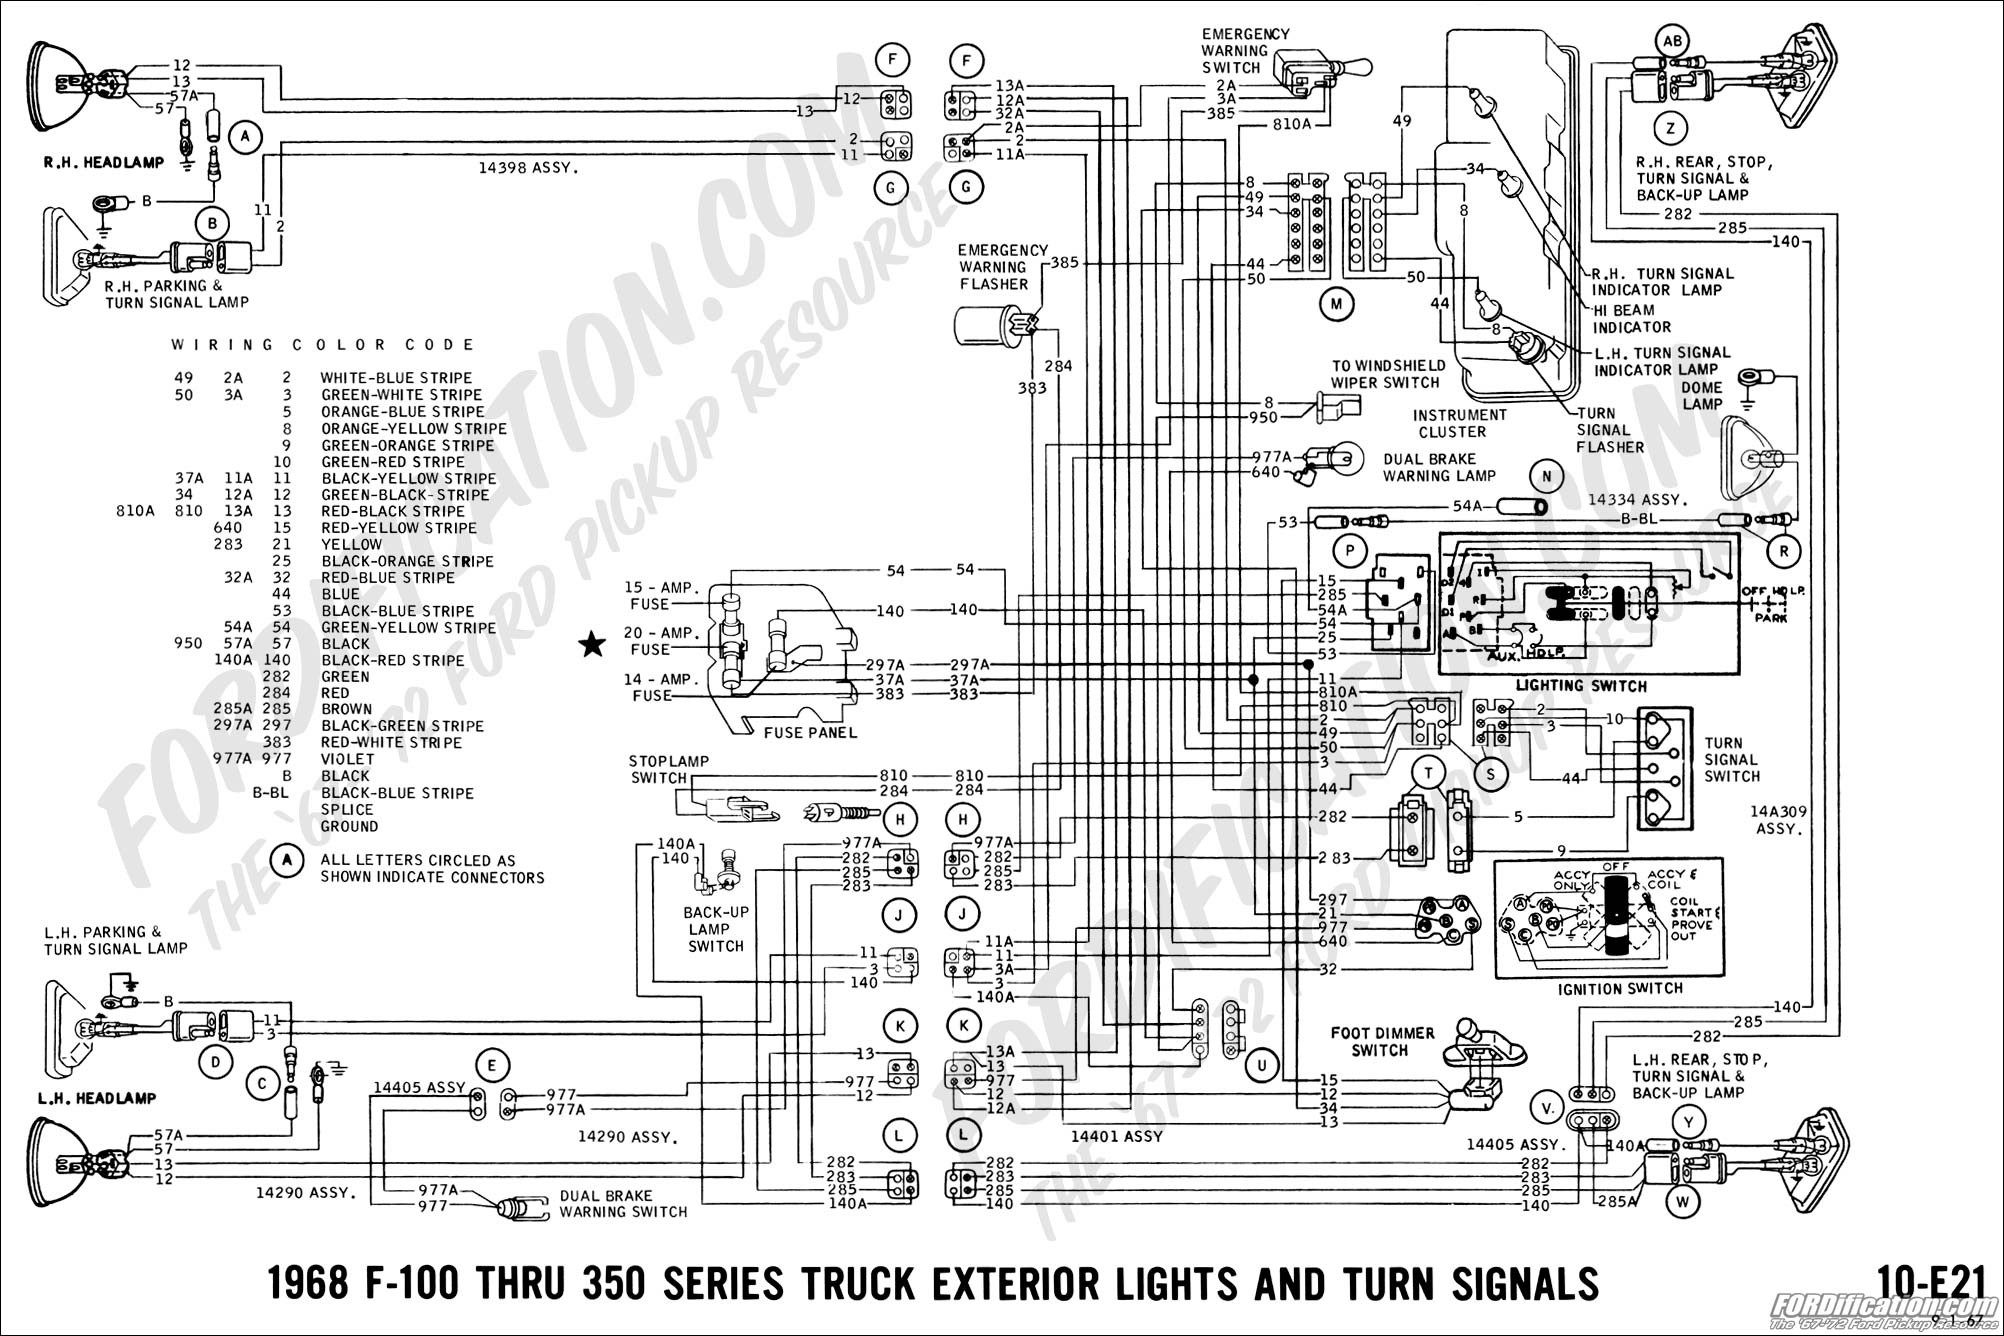 Tail Light Wiring Diagram for 2000 F350 688 ford F 350 Tail Light Wiring Diagram Of Tail Light Wiring Diagram for 2000 F350